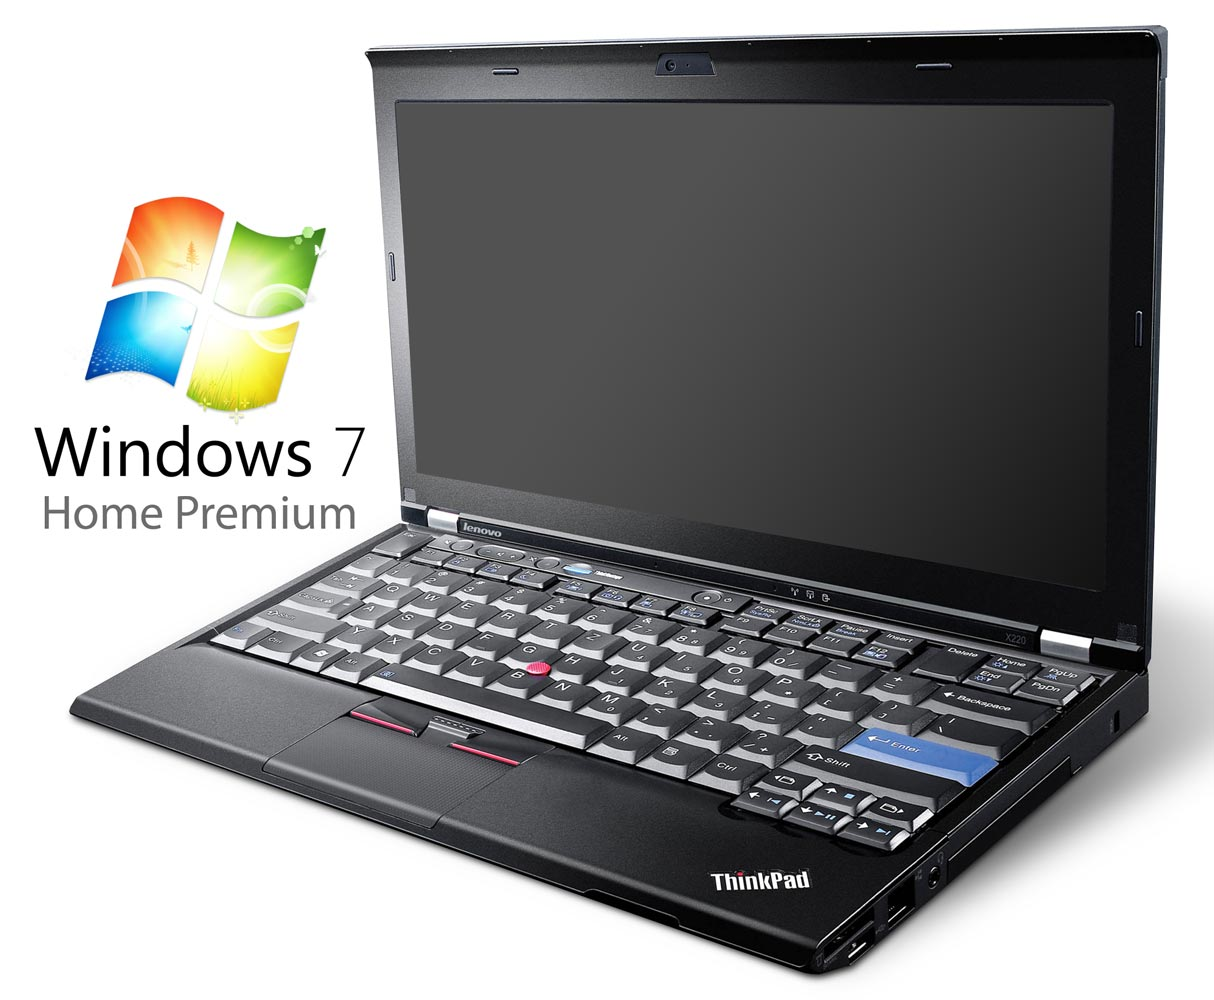 lenovo thinkpad x220 12 5 zoll laptop core i5 2 5ghz 4gb 320gb win 7 home 64bit ebay. Black Bedroom Furniture Sets. Home Design Ideas